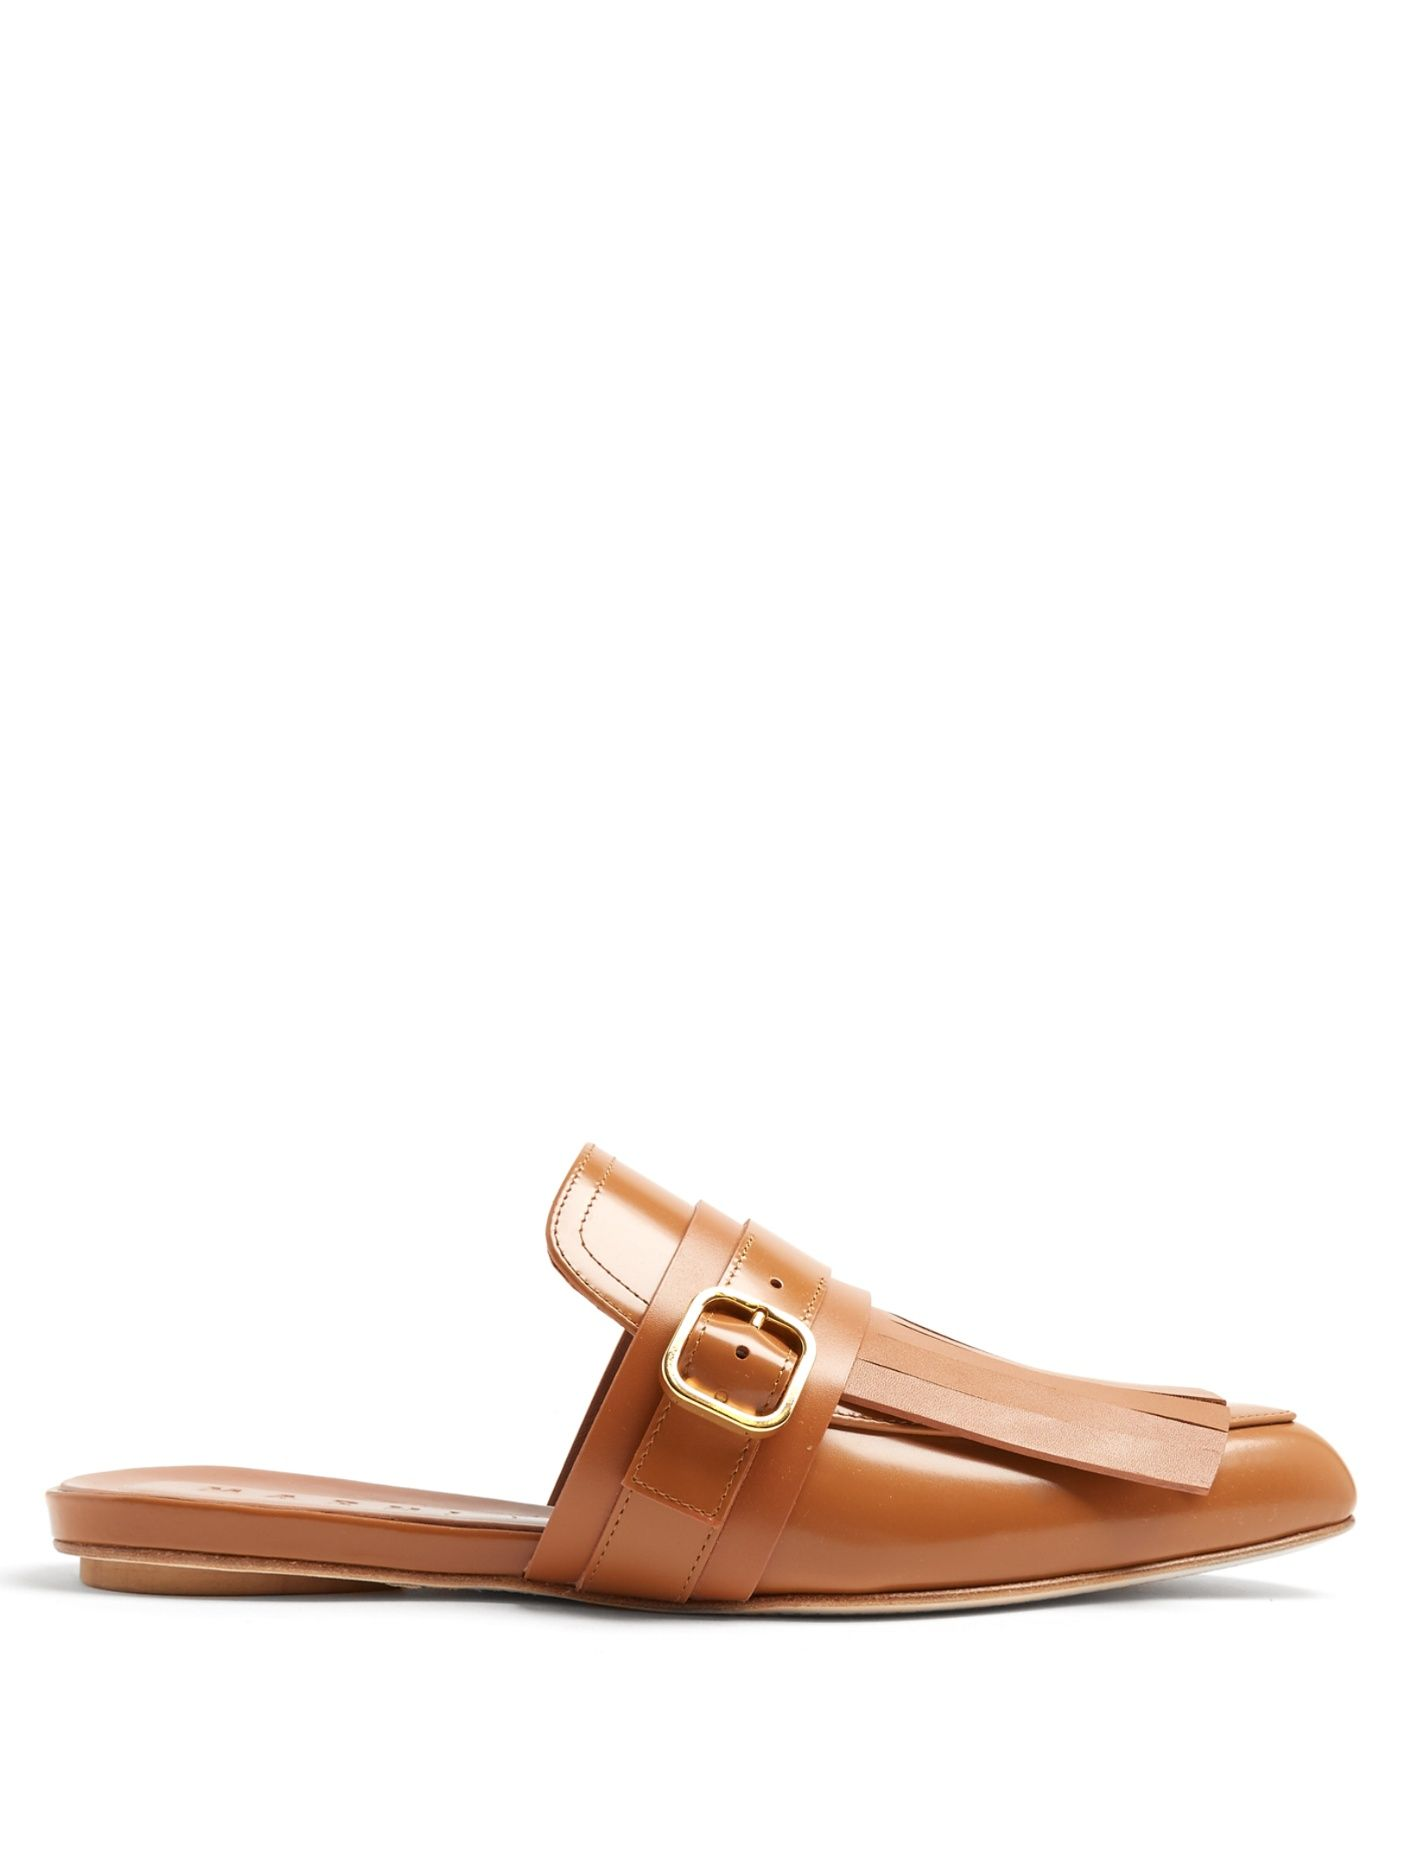 Click here to buy Marni Fringed backless loafers at MATCHESFASHION.COM